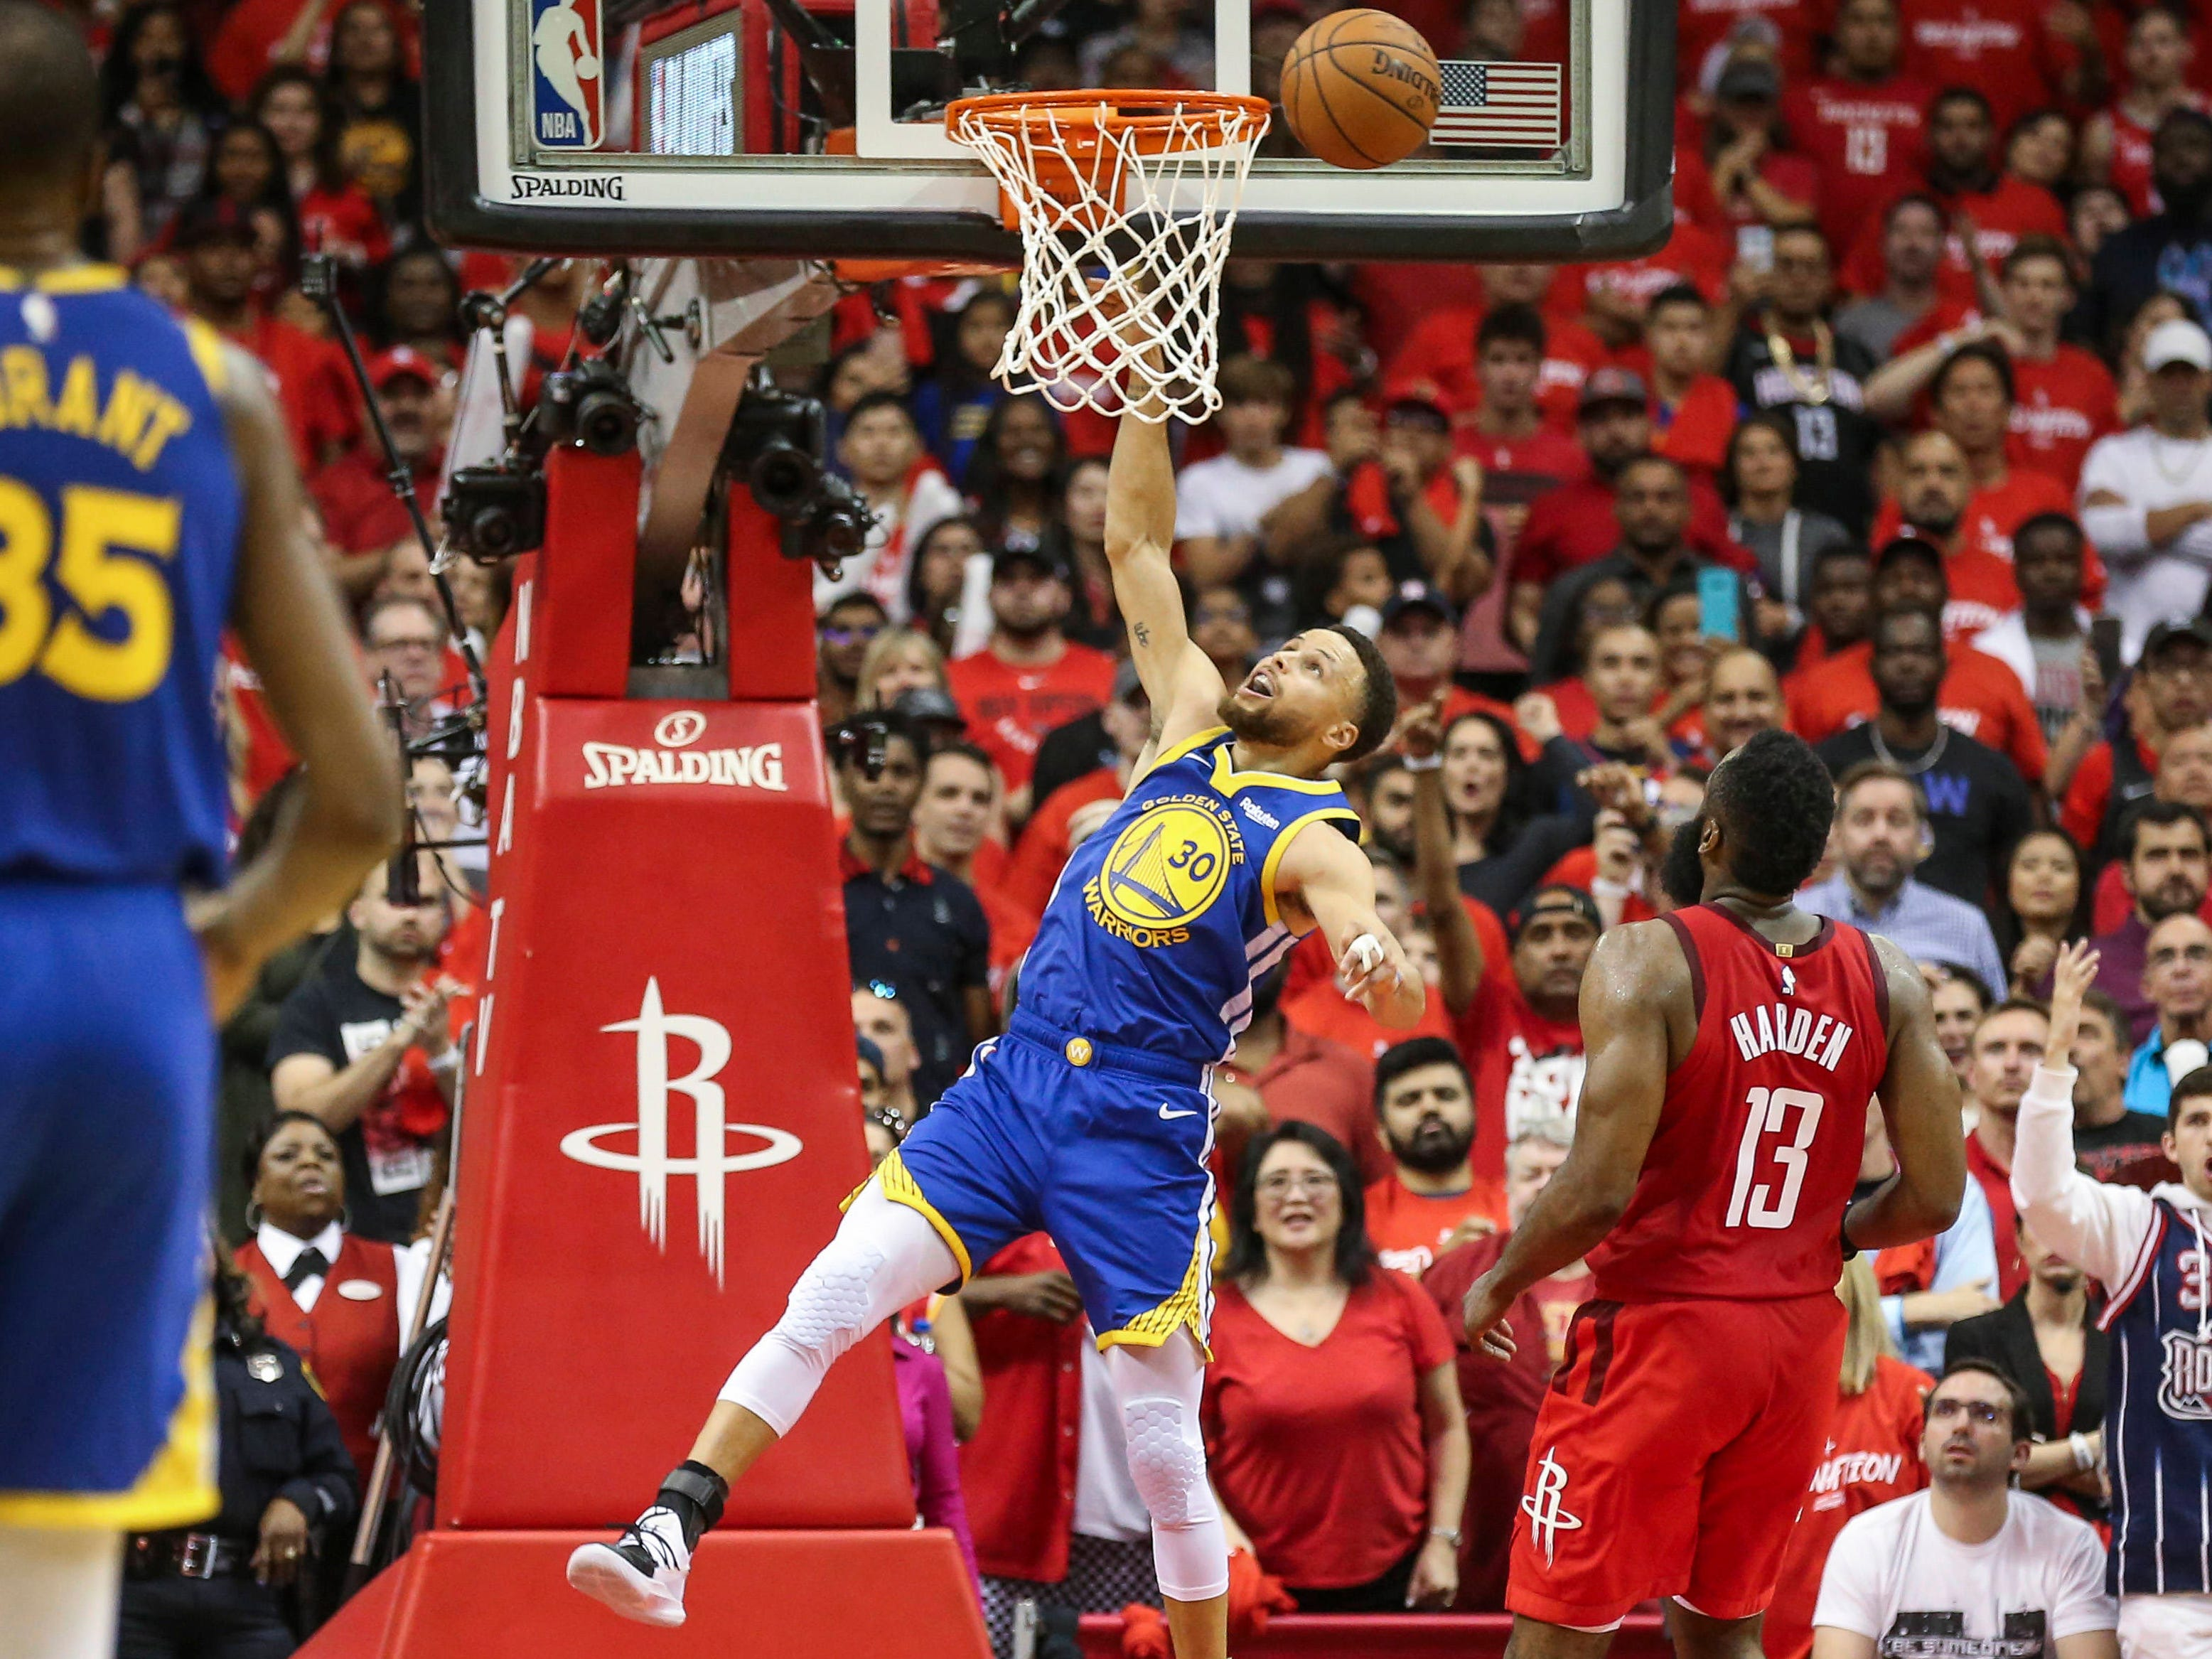 May 4: Warriors guard Steph Curry (30) misses a dunk attempt during Game 3 against the Rockets.